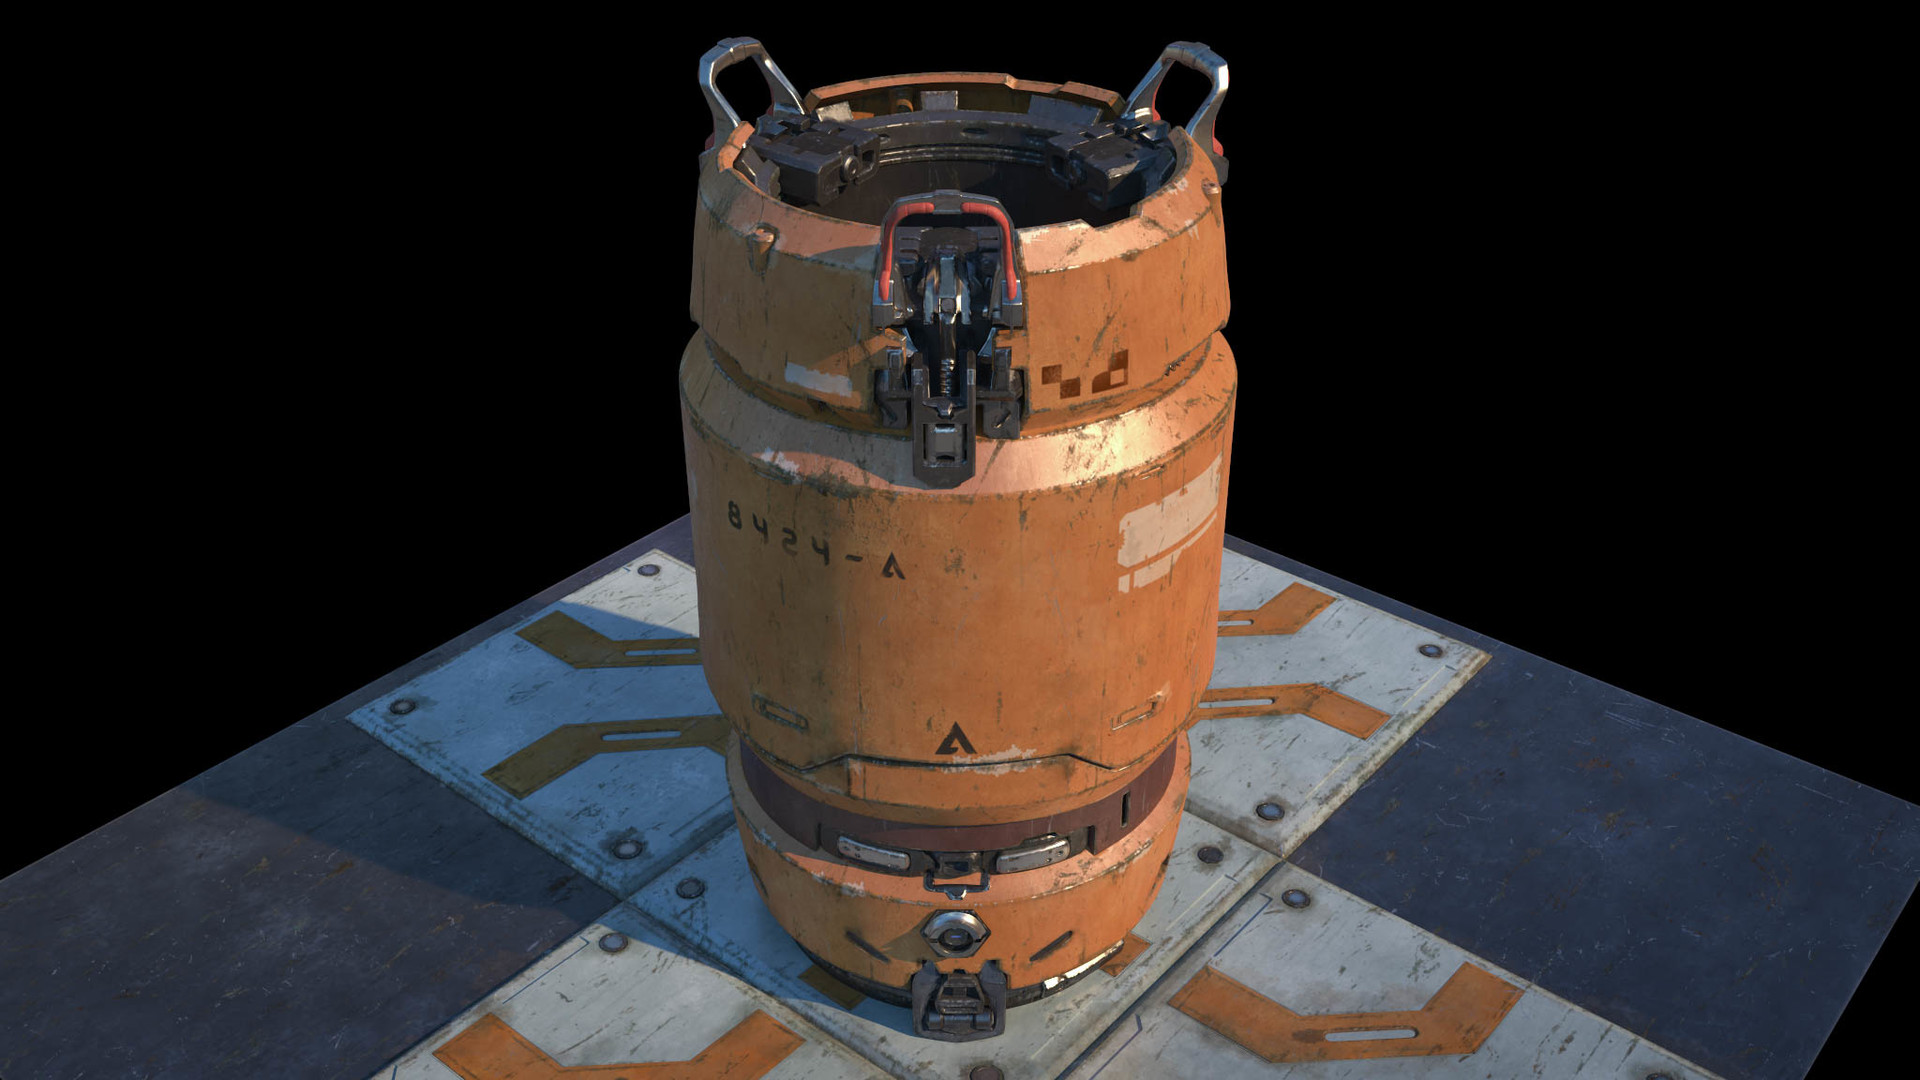 Koushik routh halo 5 barrel lookdev v04